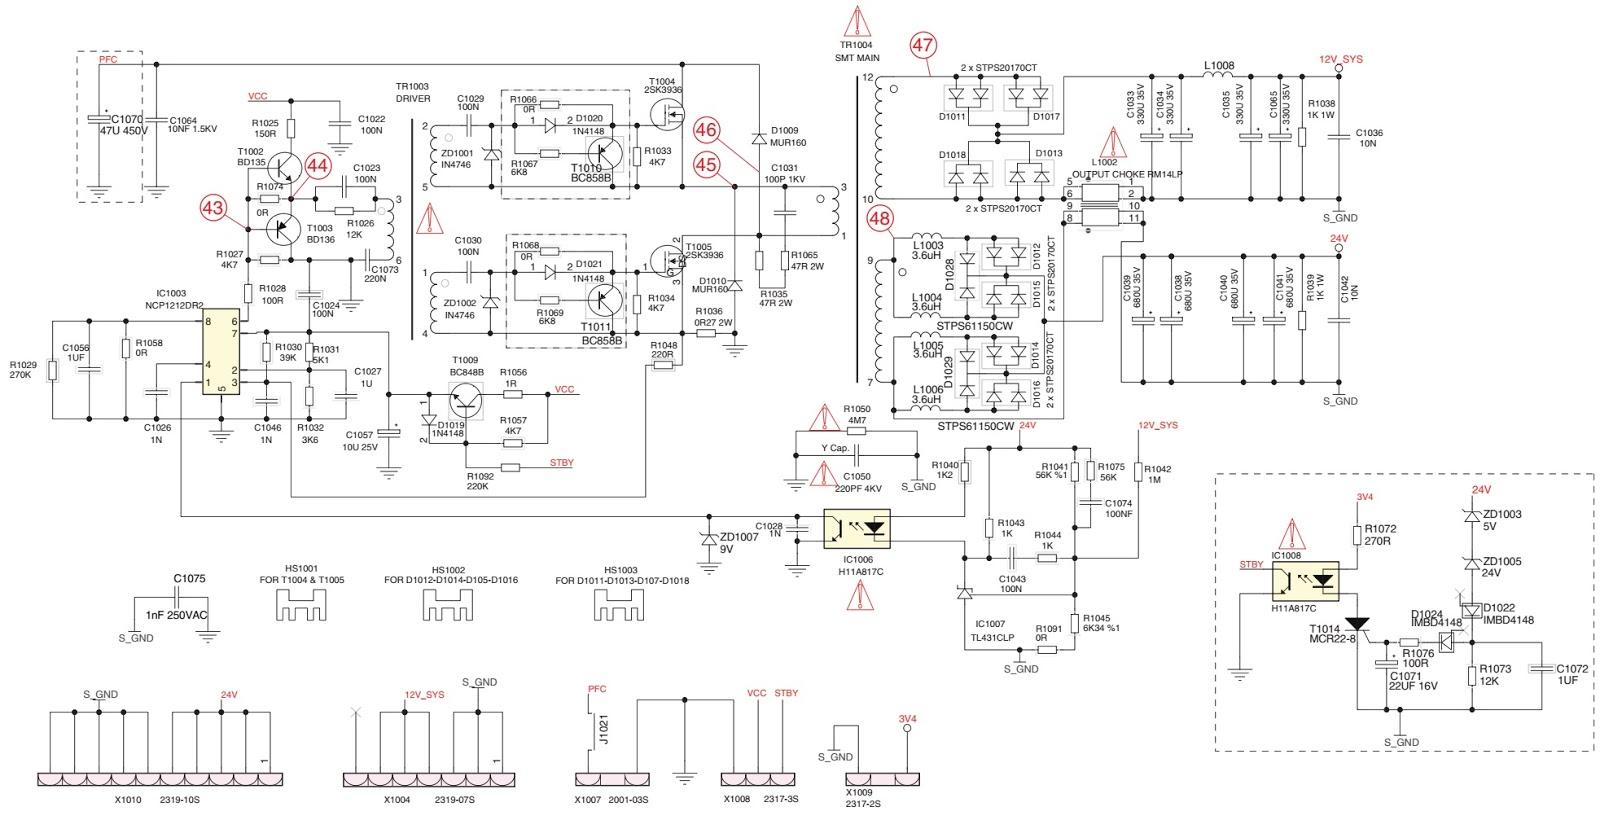 Grundig Lcd Tv Smps Schematics Circuit Diagrams Homenol Dryer Schematic Wiring Diagram Fuse Screw Power Supply Board Z4h194 06 Used Ics Ncp1212dr2 2sk3936fetx2 H11a817copto